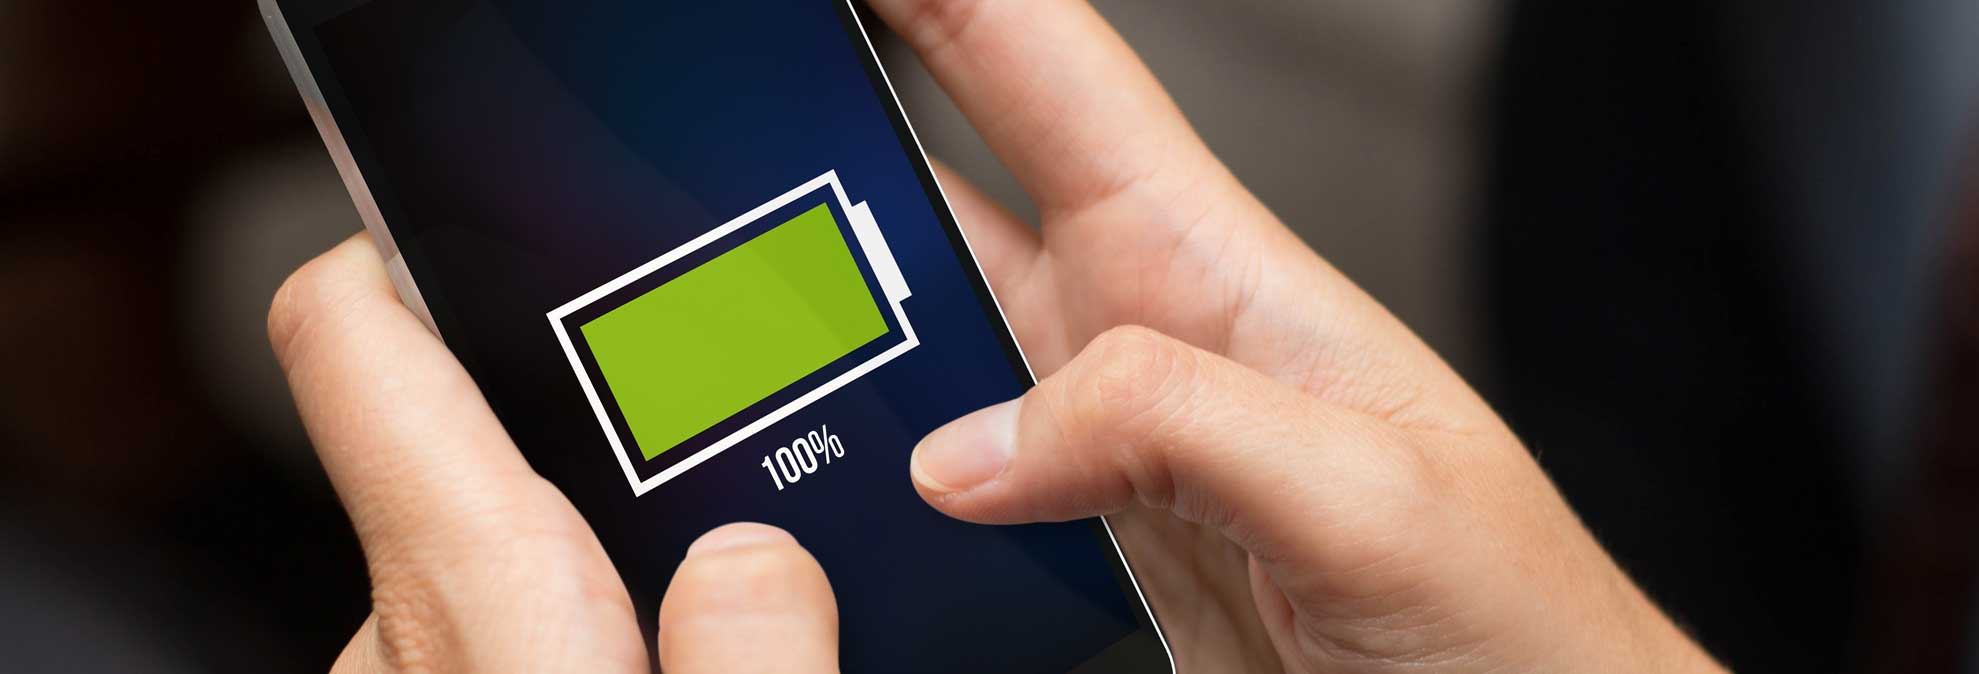 https://article.images.consumerreports.org/prod/content/dam/cro/news_articles/Electronics/CR-Magazine-Hero-how-to-maximize-your-smartphone-battery-life-11-16-v2-